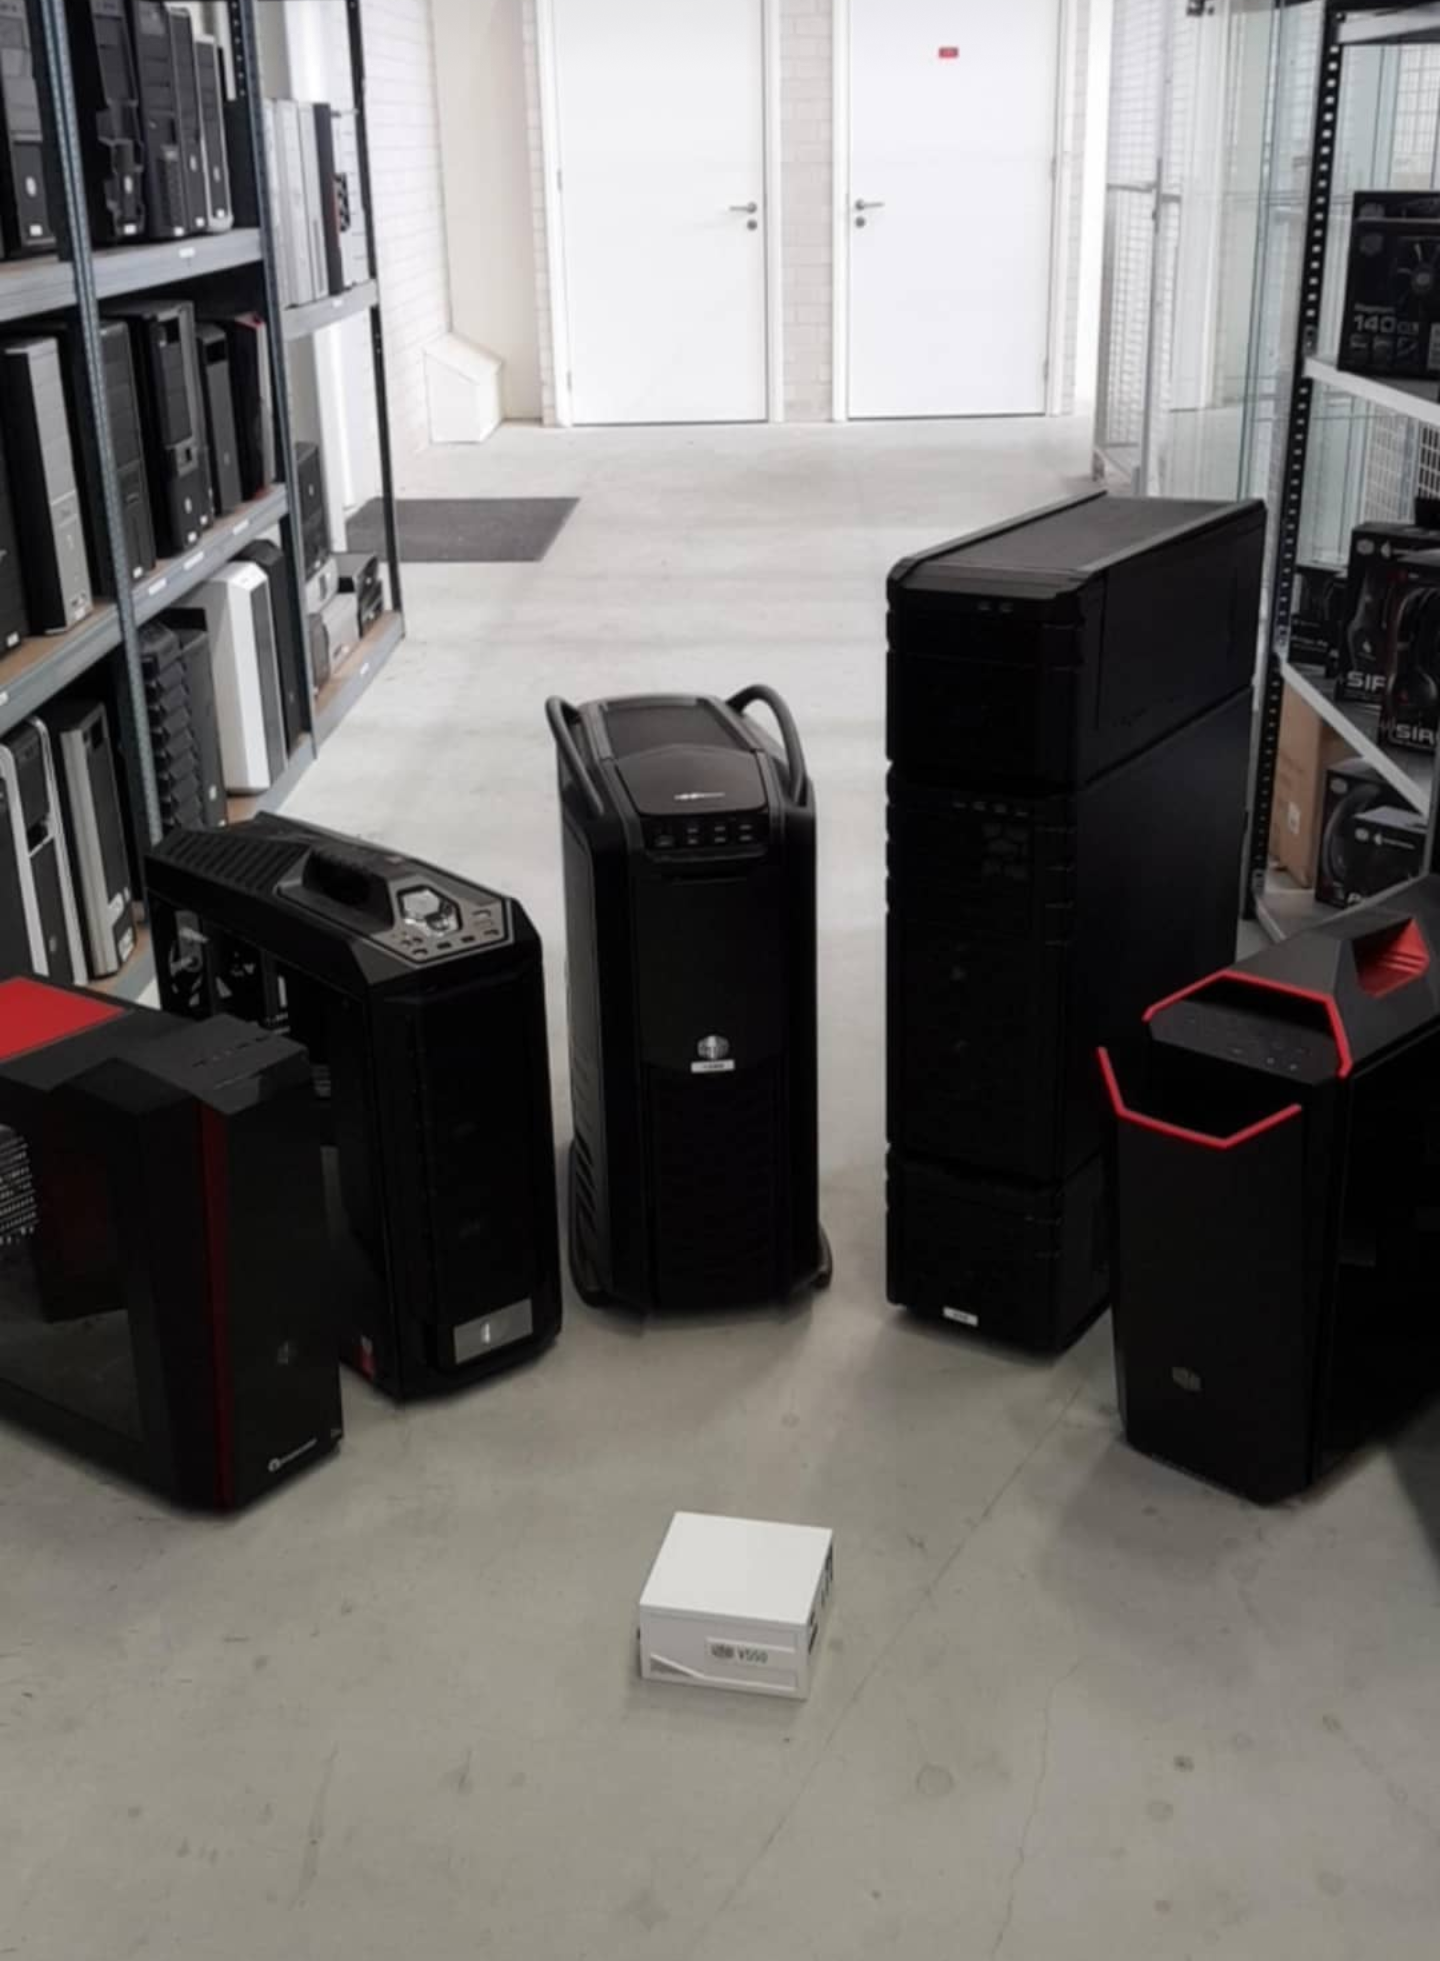 Cooler Master makes some really nice PC cases